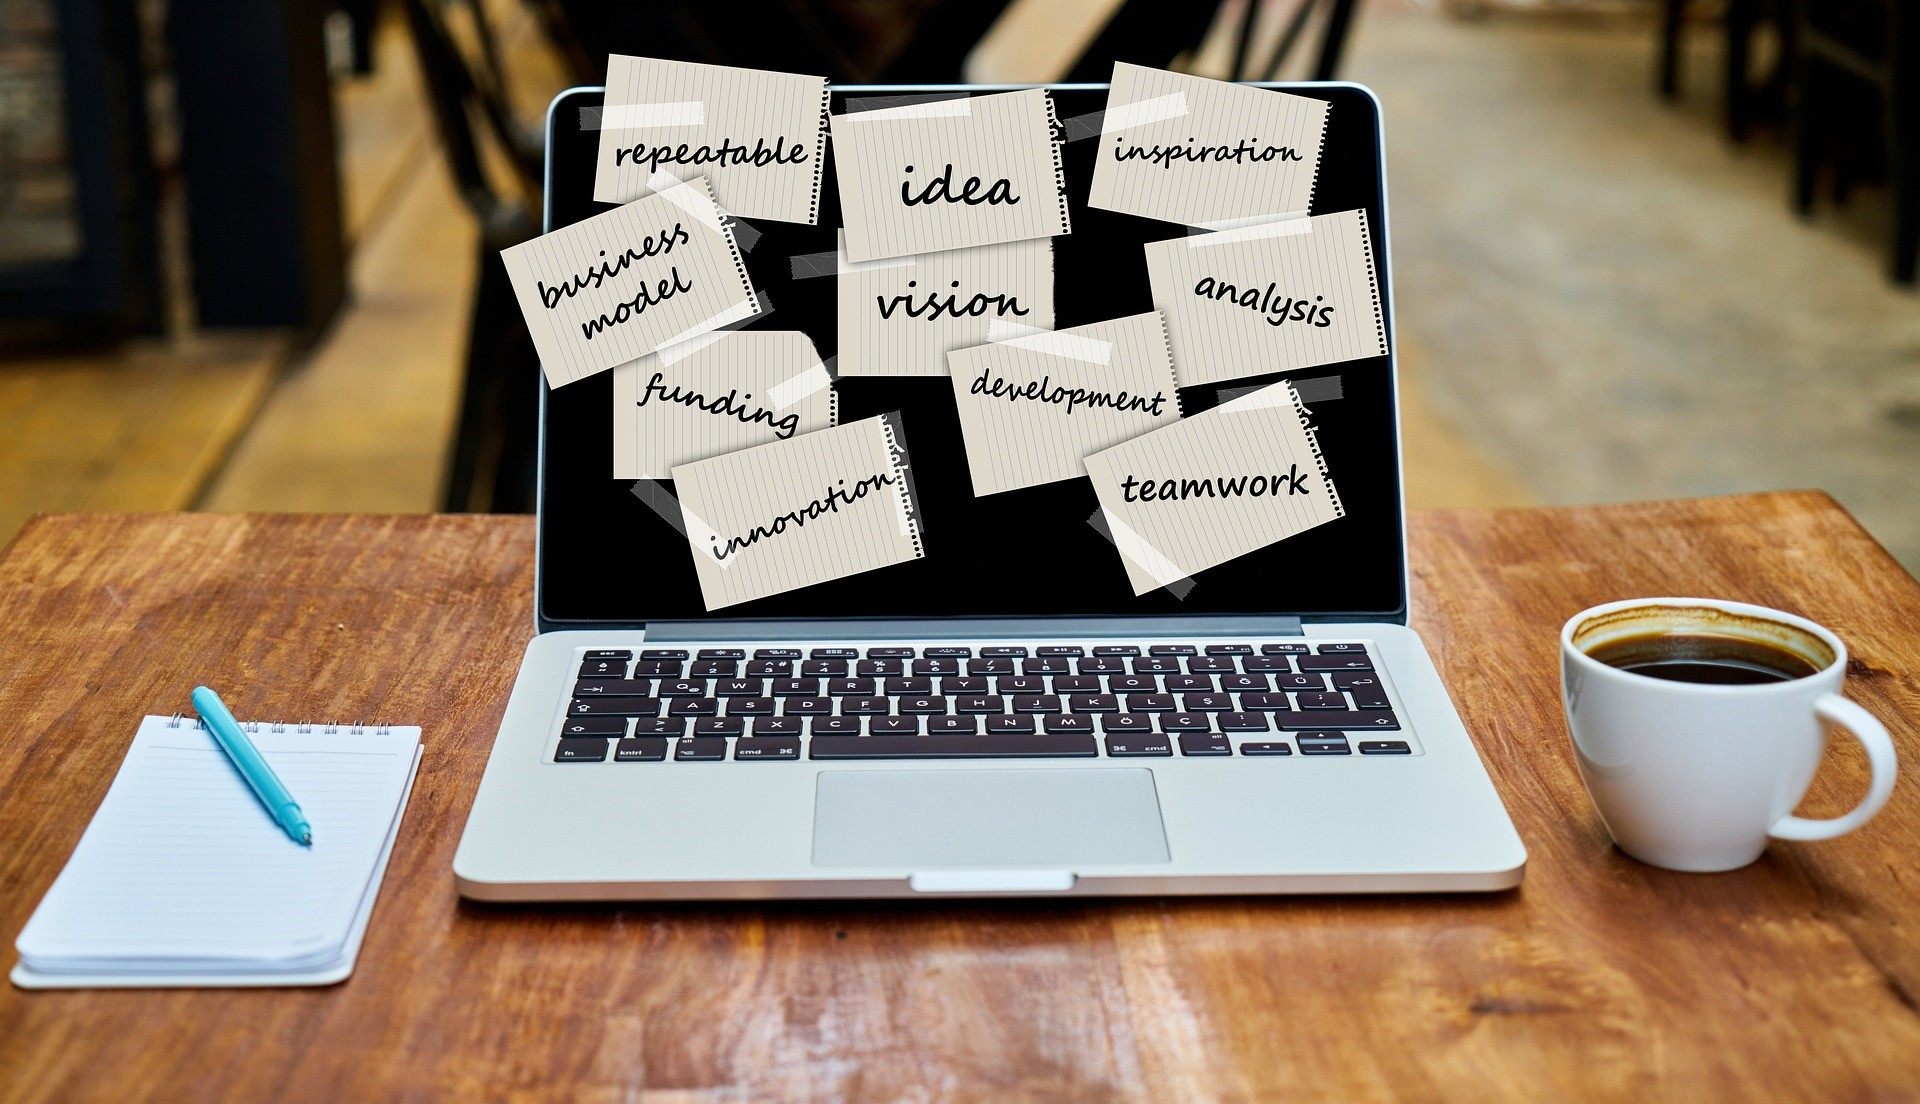 stock photo of a laptop with business buzz words such as idea vision development and teamwork stuck to it